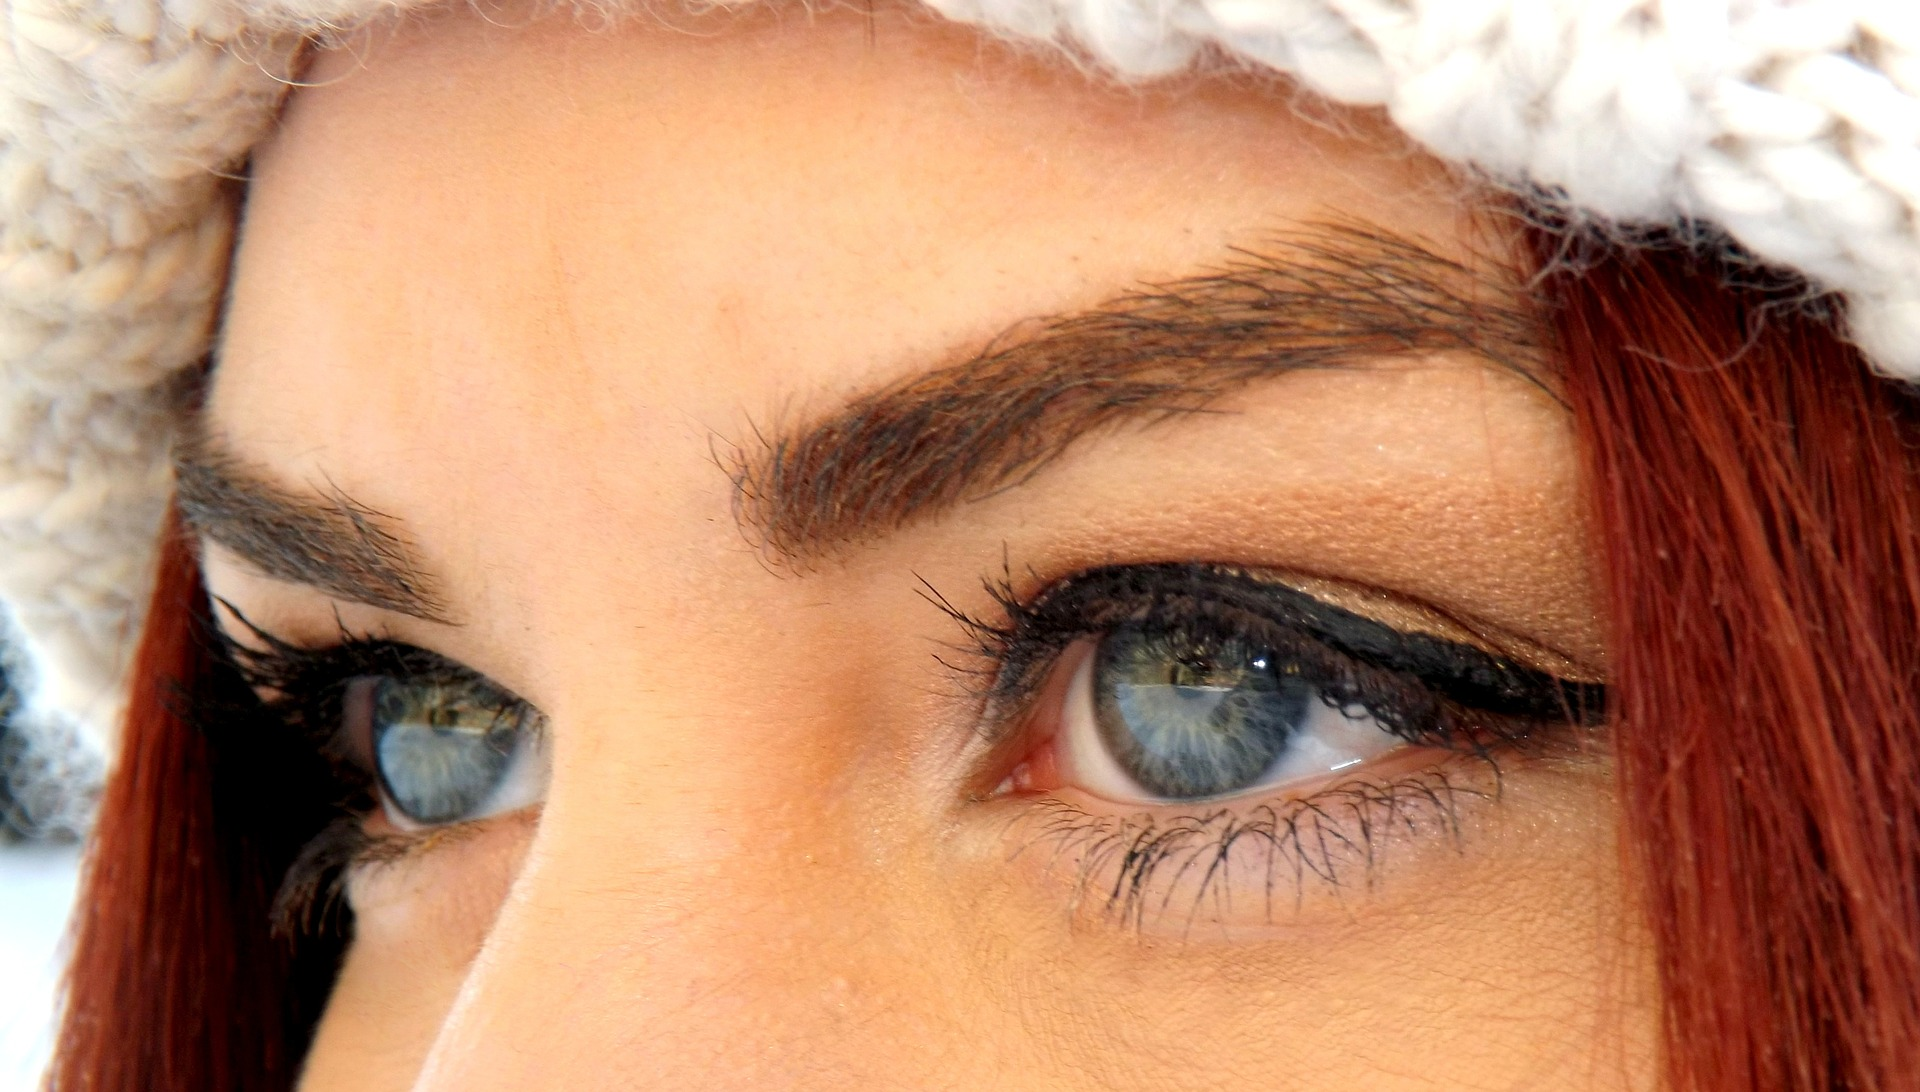 Midtown Optometry - How to Find the RIght Set of Contact Lenses